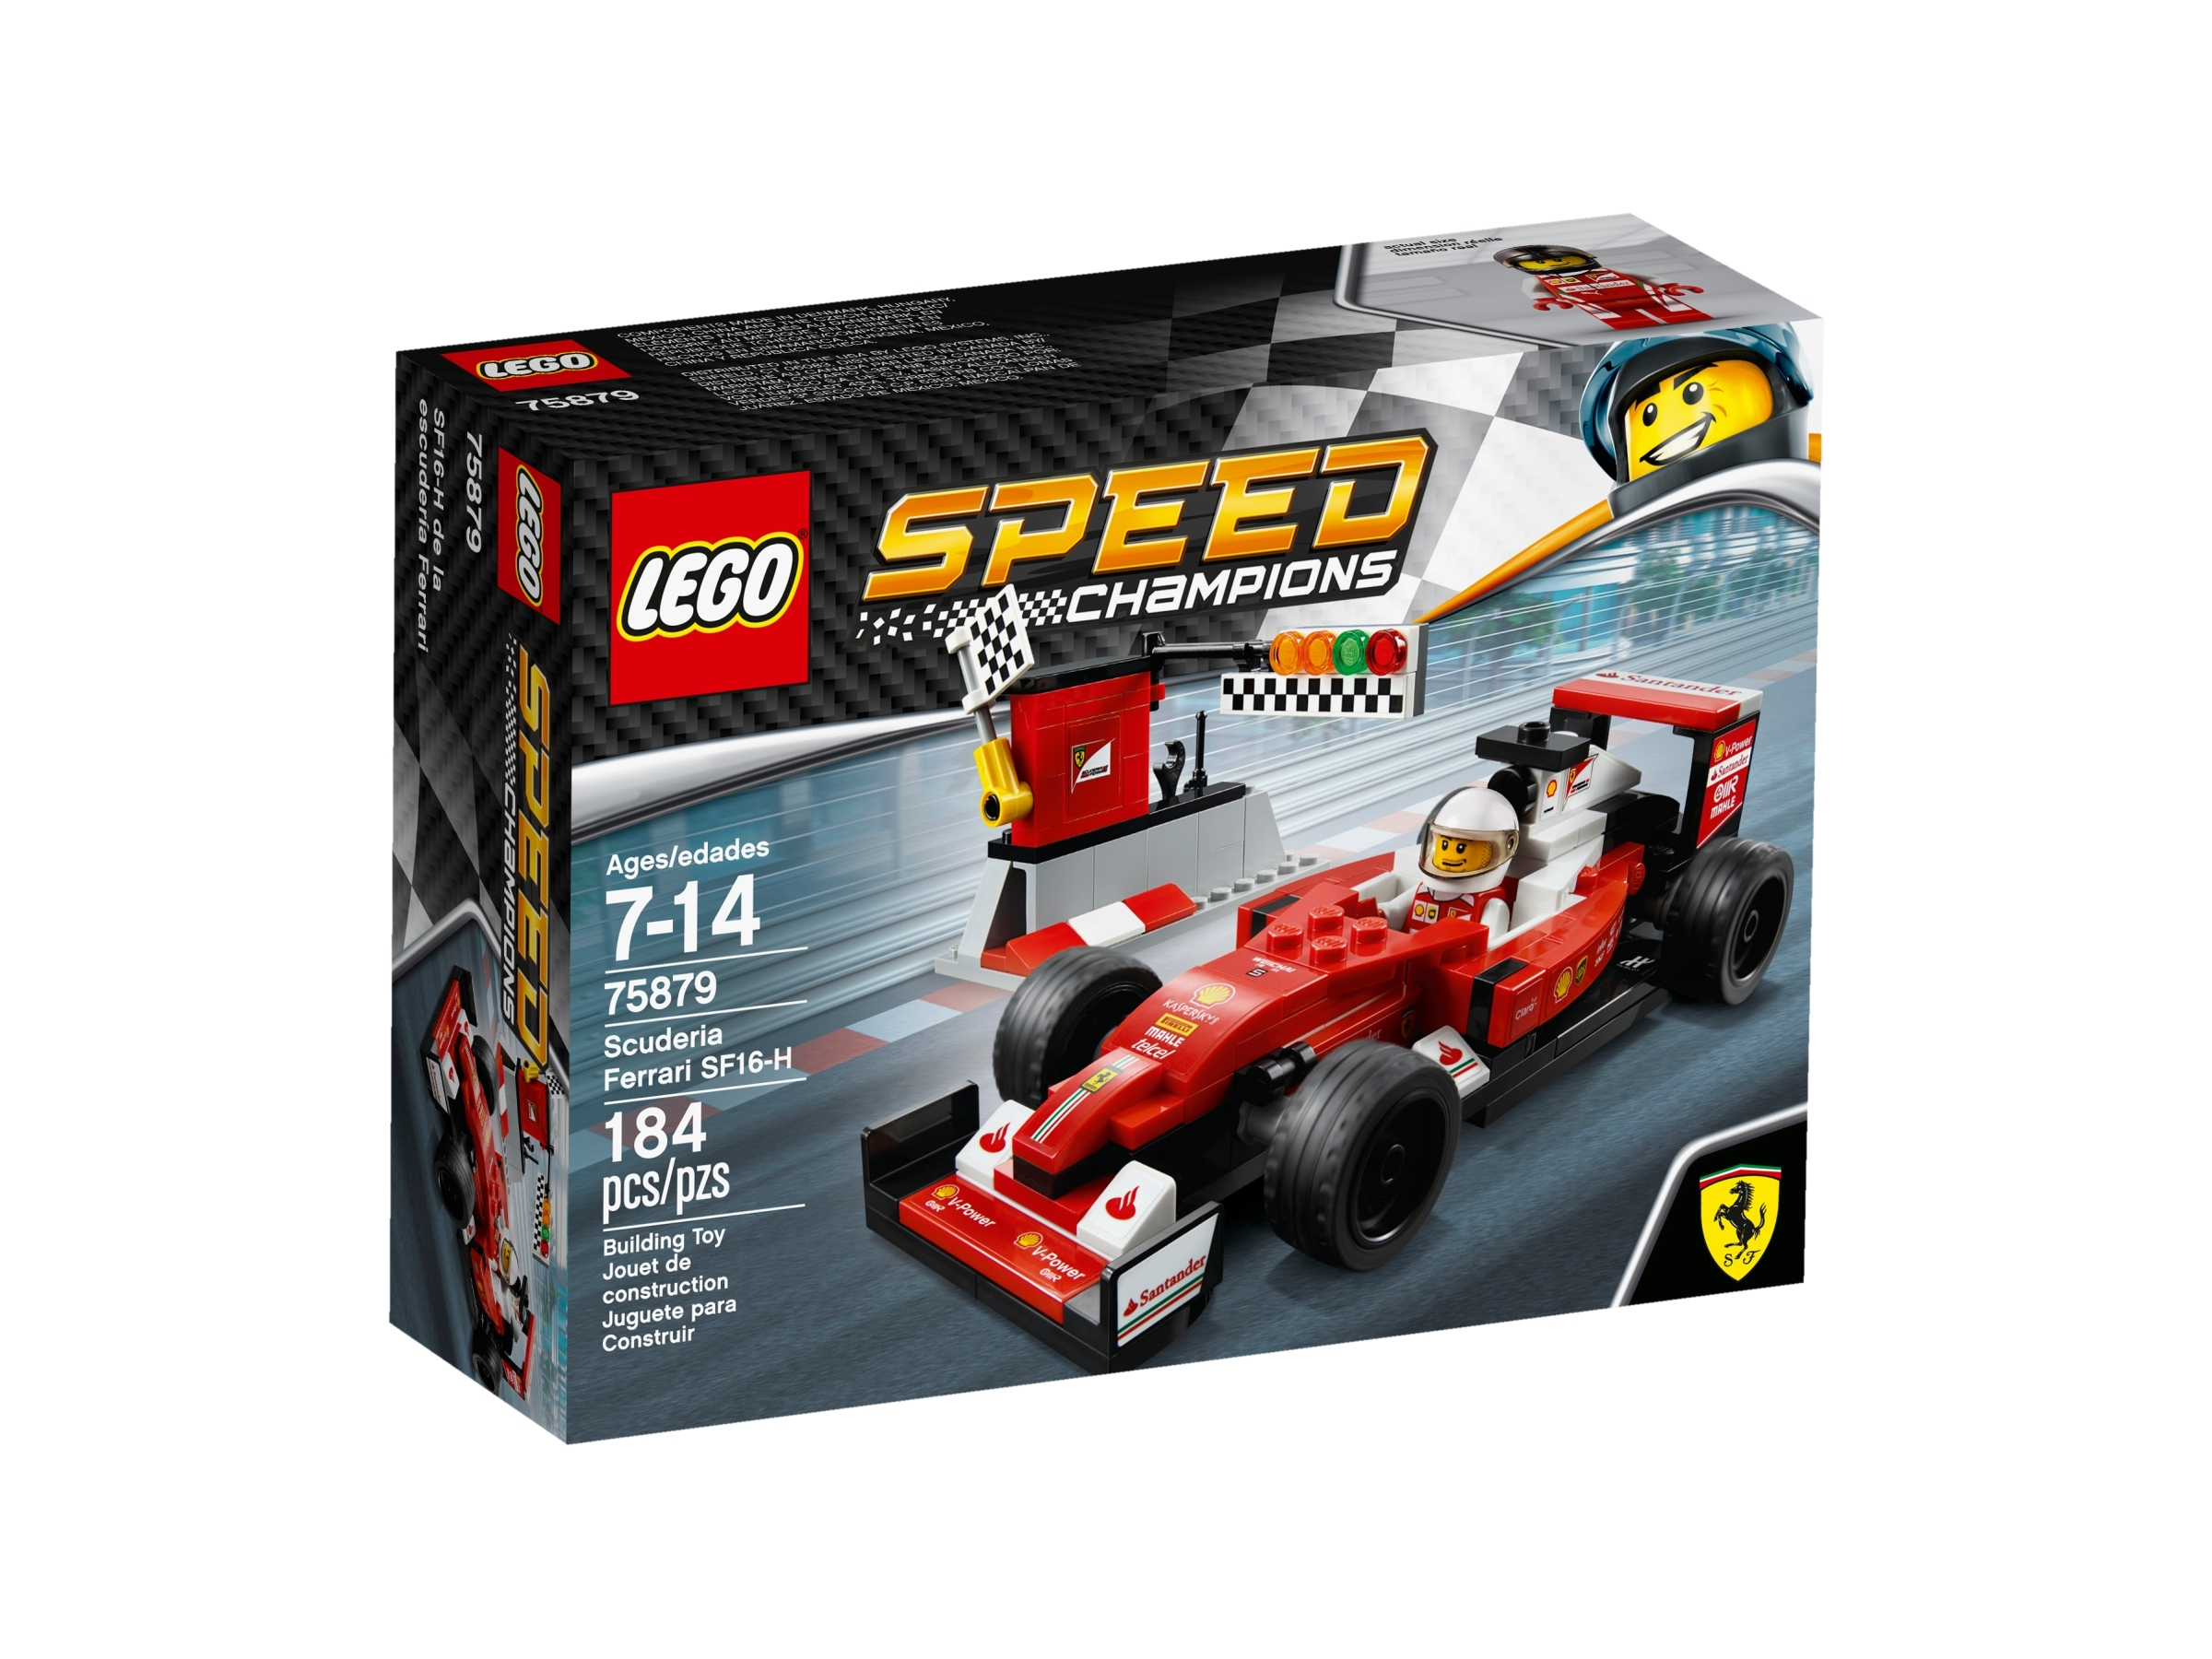 Scuderia Ferrari Sf16 H 75879 Speed Champions Buy Online At The Official Lego Shop Us